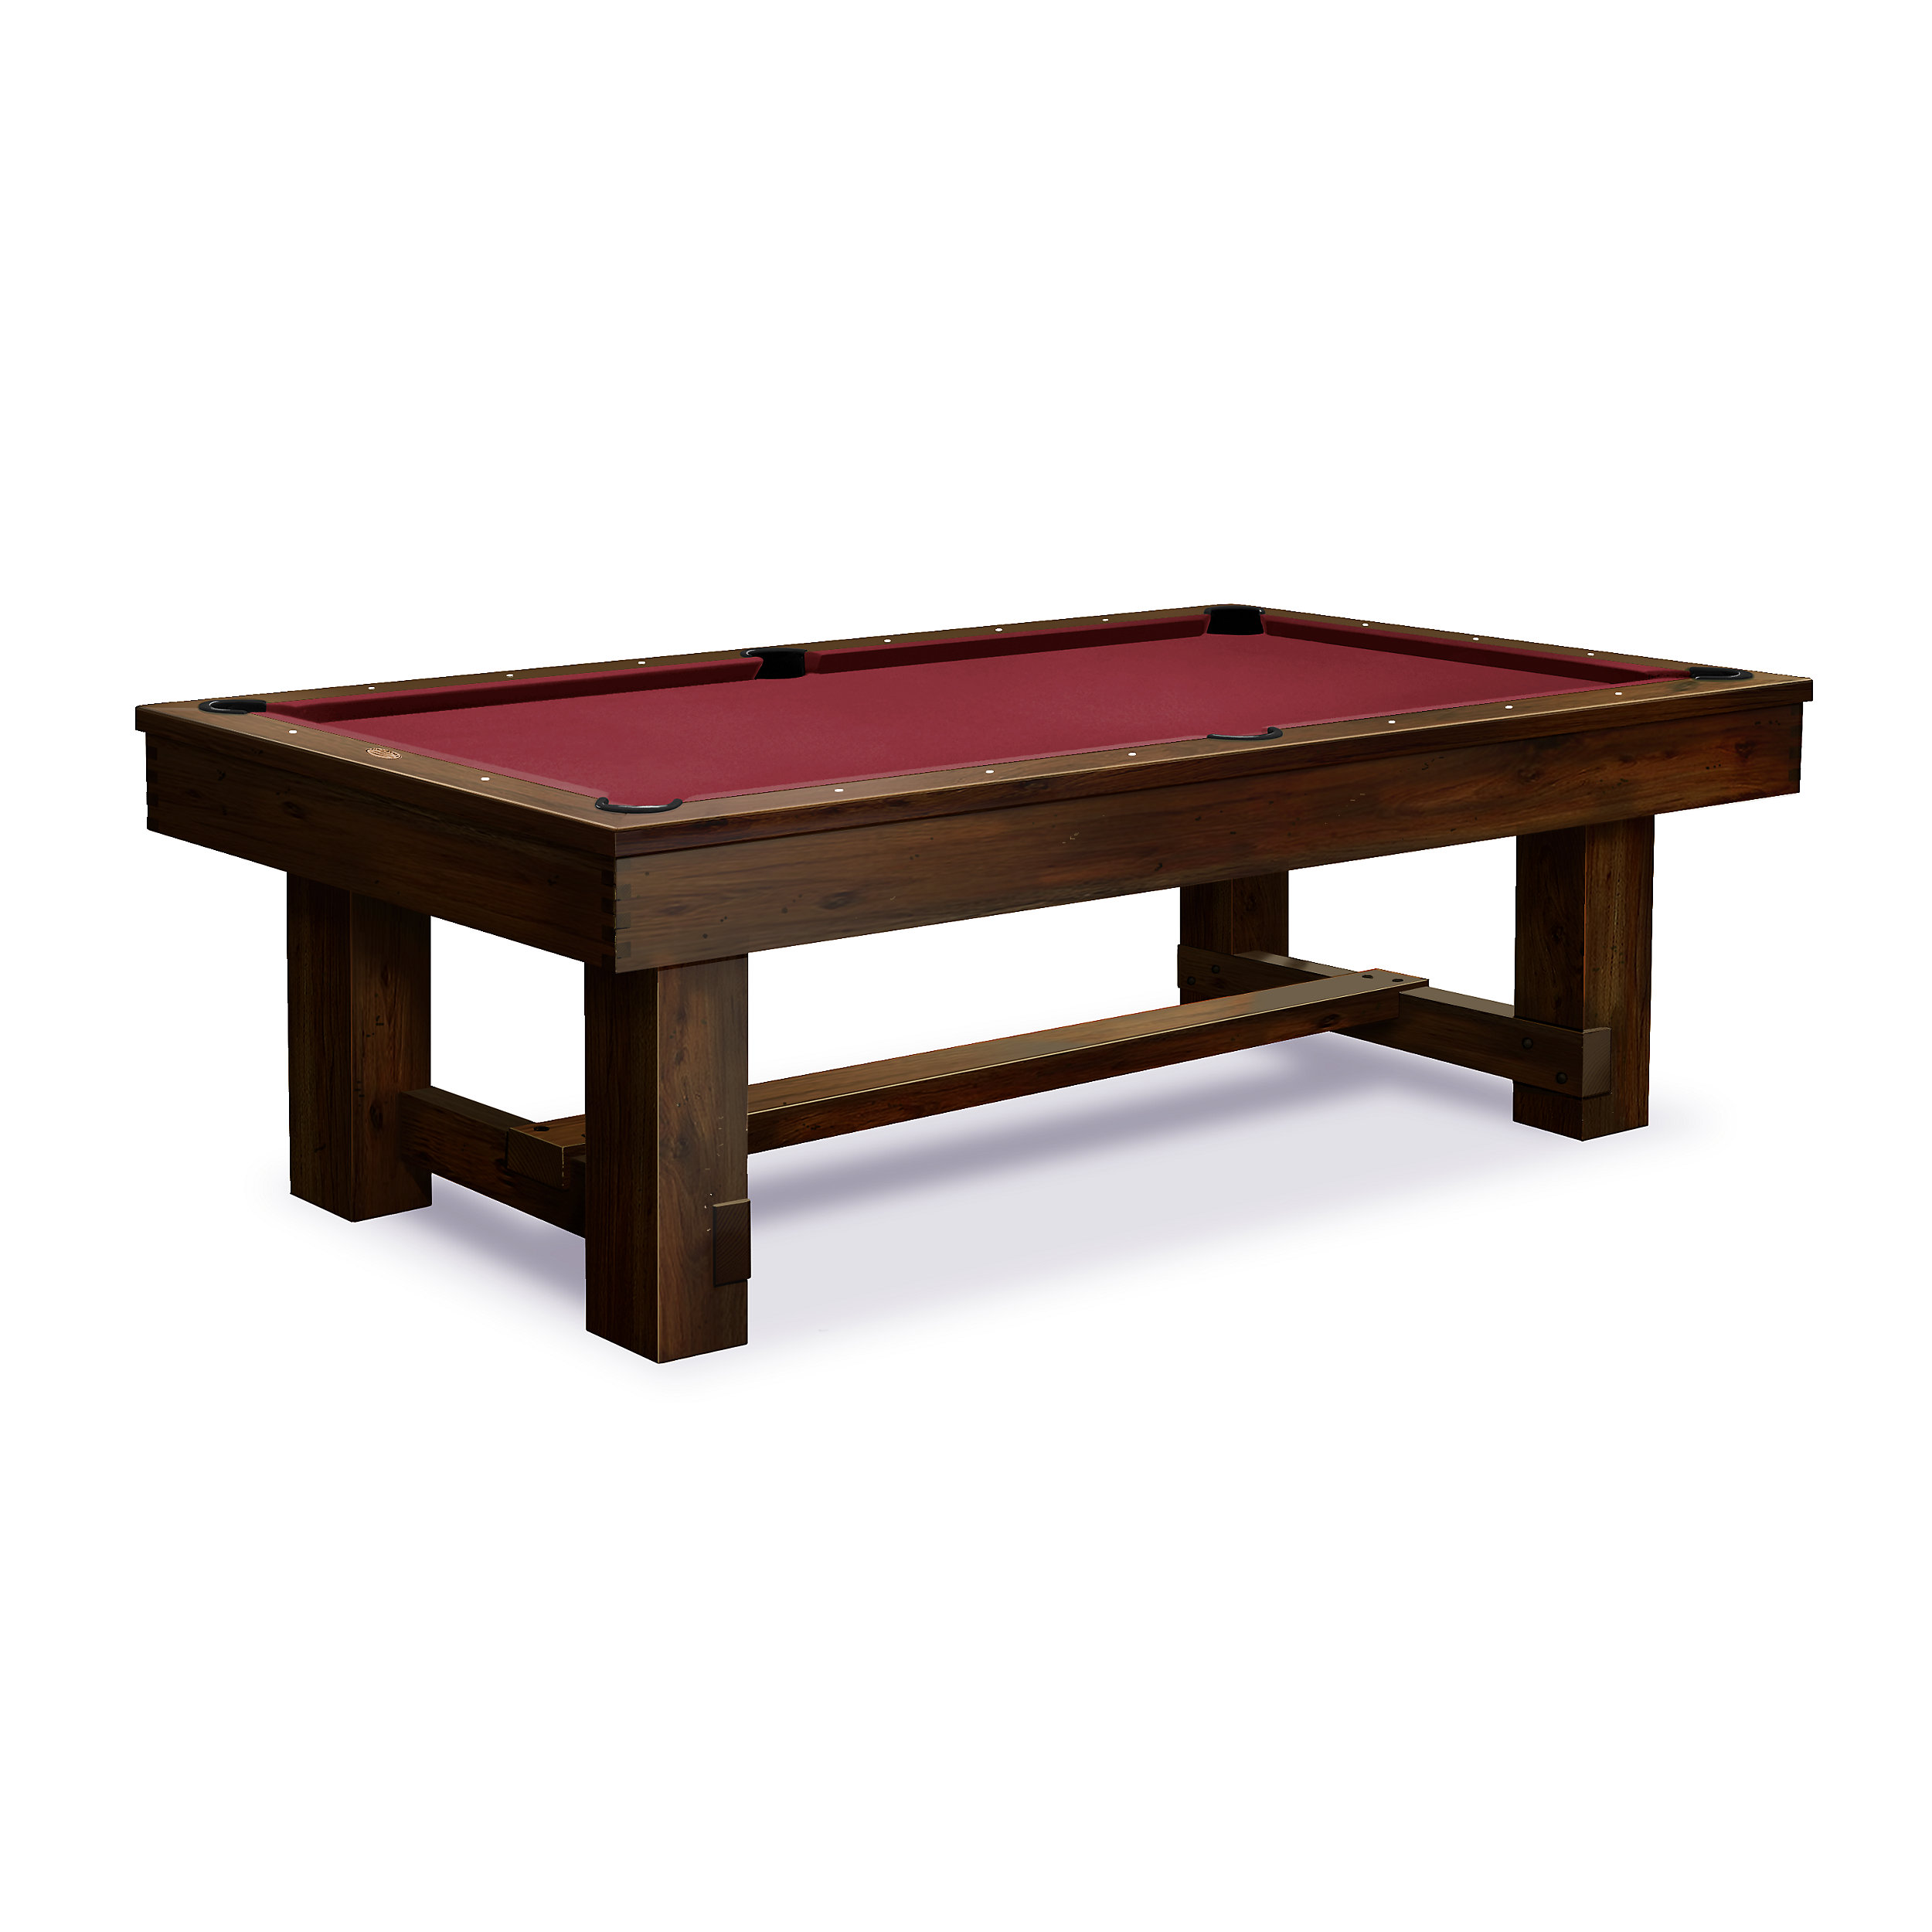 sam tables pool black table red bison sold american sparkle sale for now play cheap free in